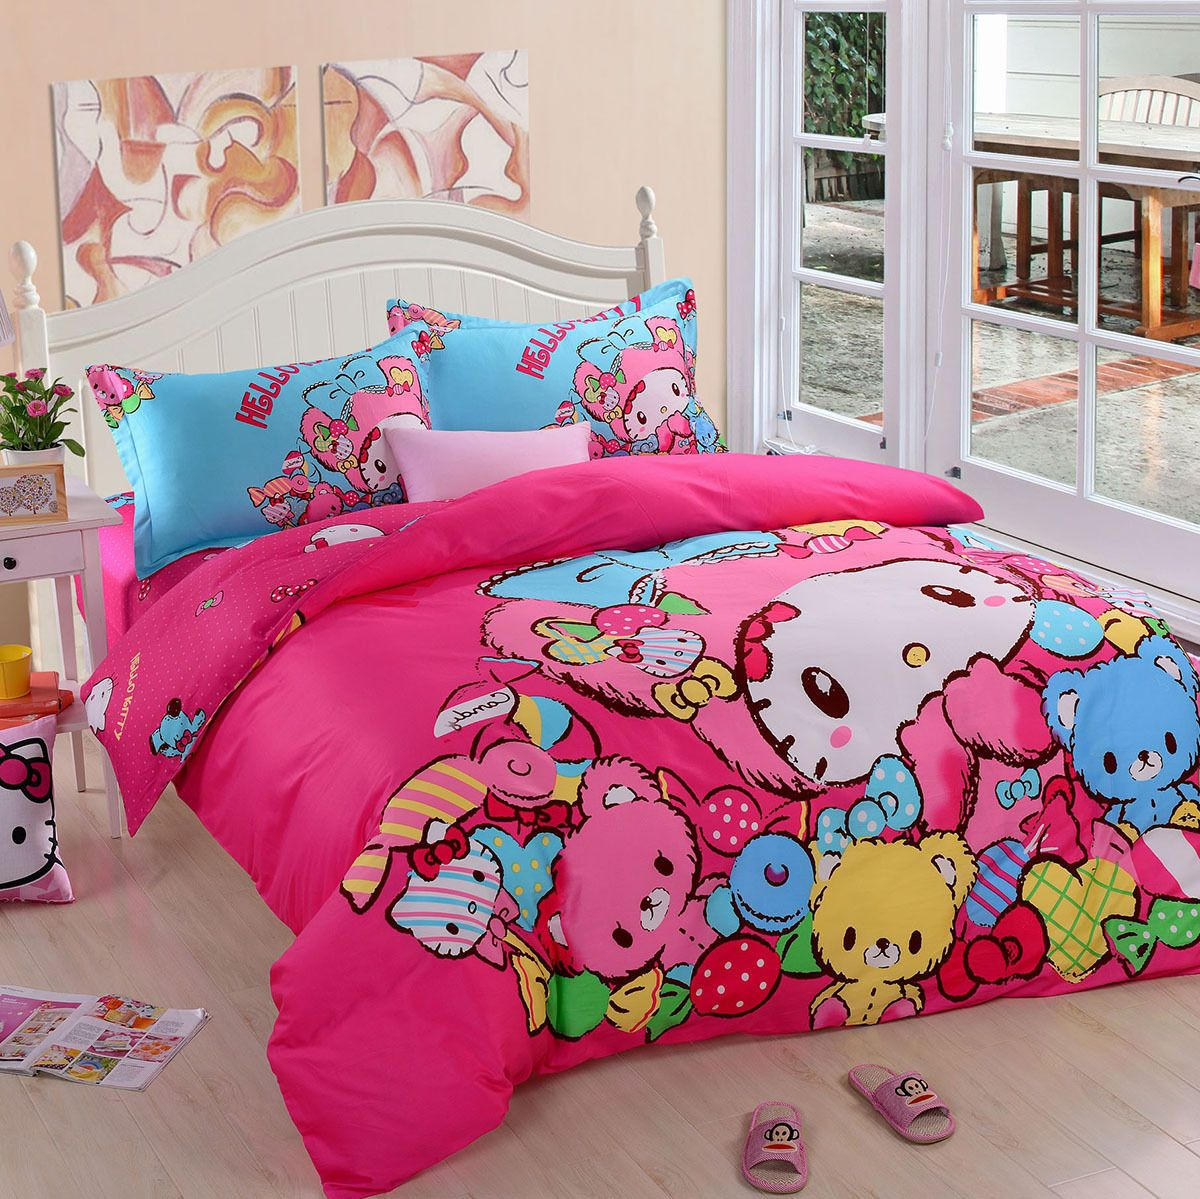 Hello kitty bed set queen size - Kids Hello Kitty Bedding Duvet Quilt Cover Bedding Set Twin Queen Cotton Pink